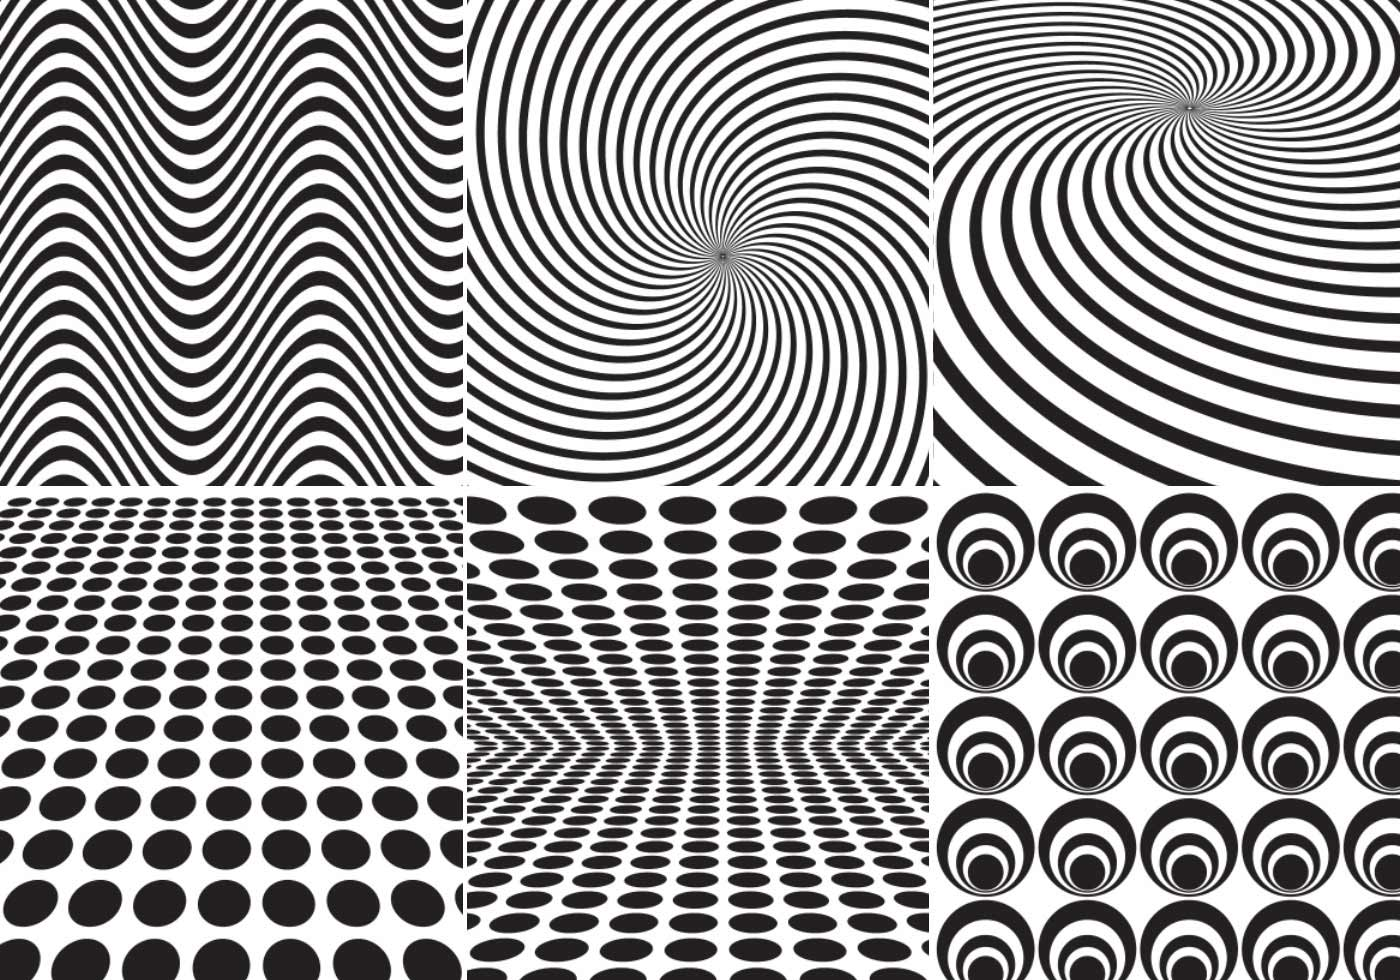 Geometric Pattern Pack Two Free Photoshop Brushes At